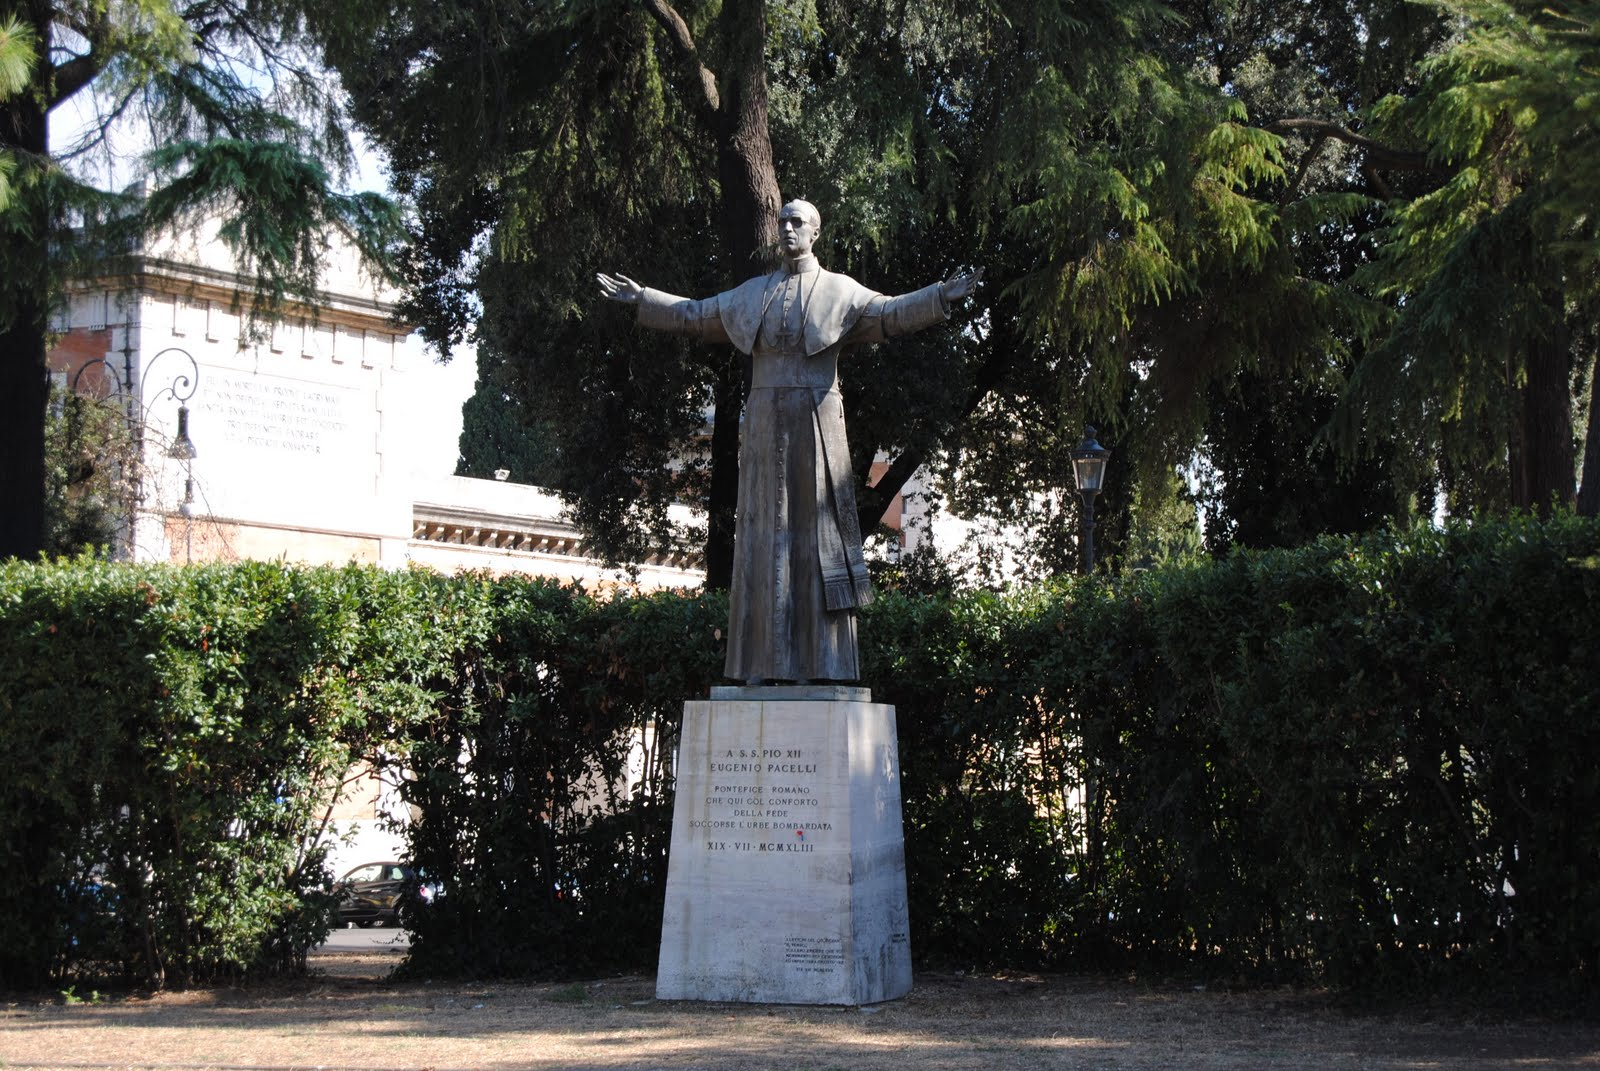 The statue of Pope Pius XII in front of the Basilica San Lorenzo fuori le mura, next to Campo Verano